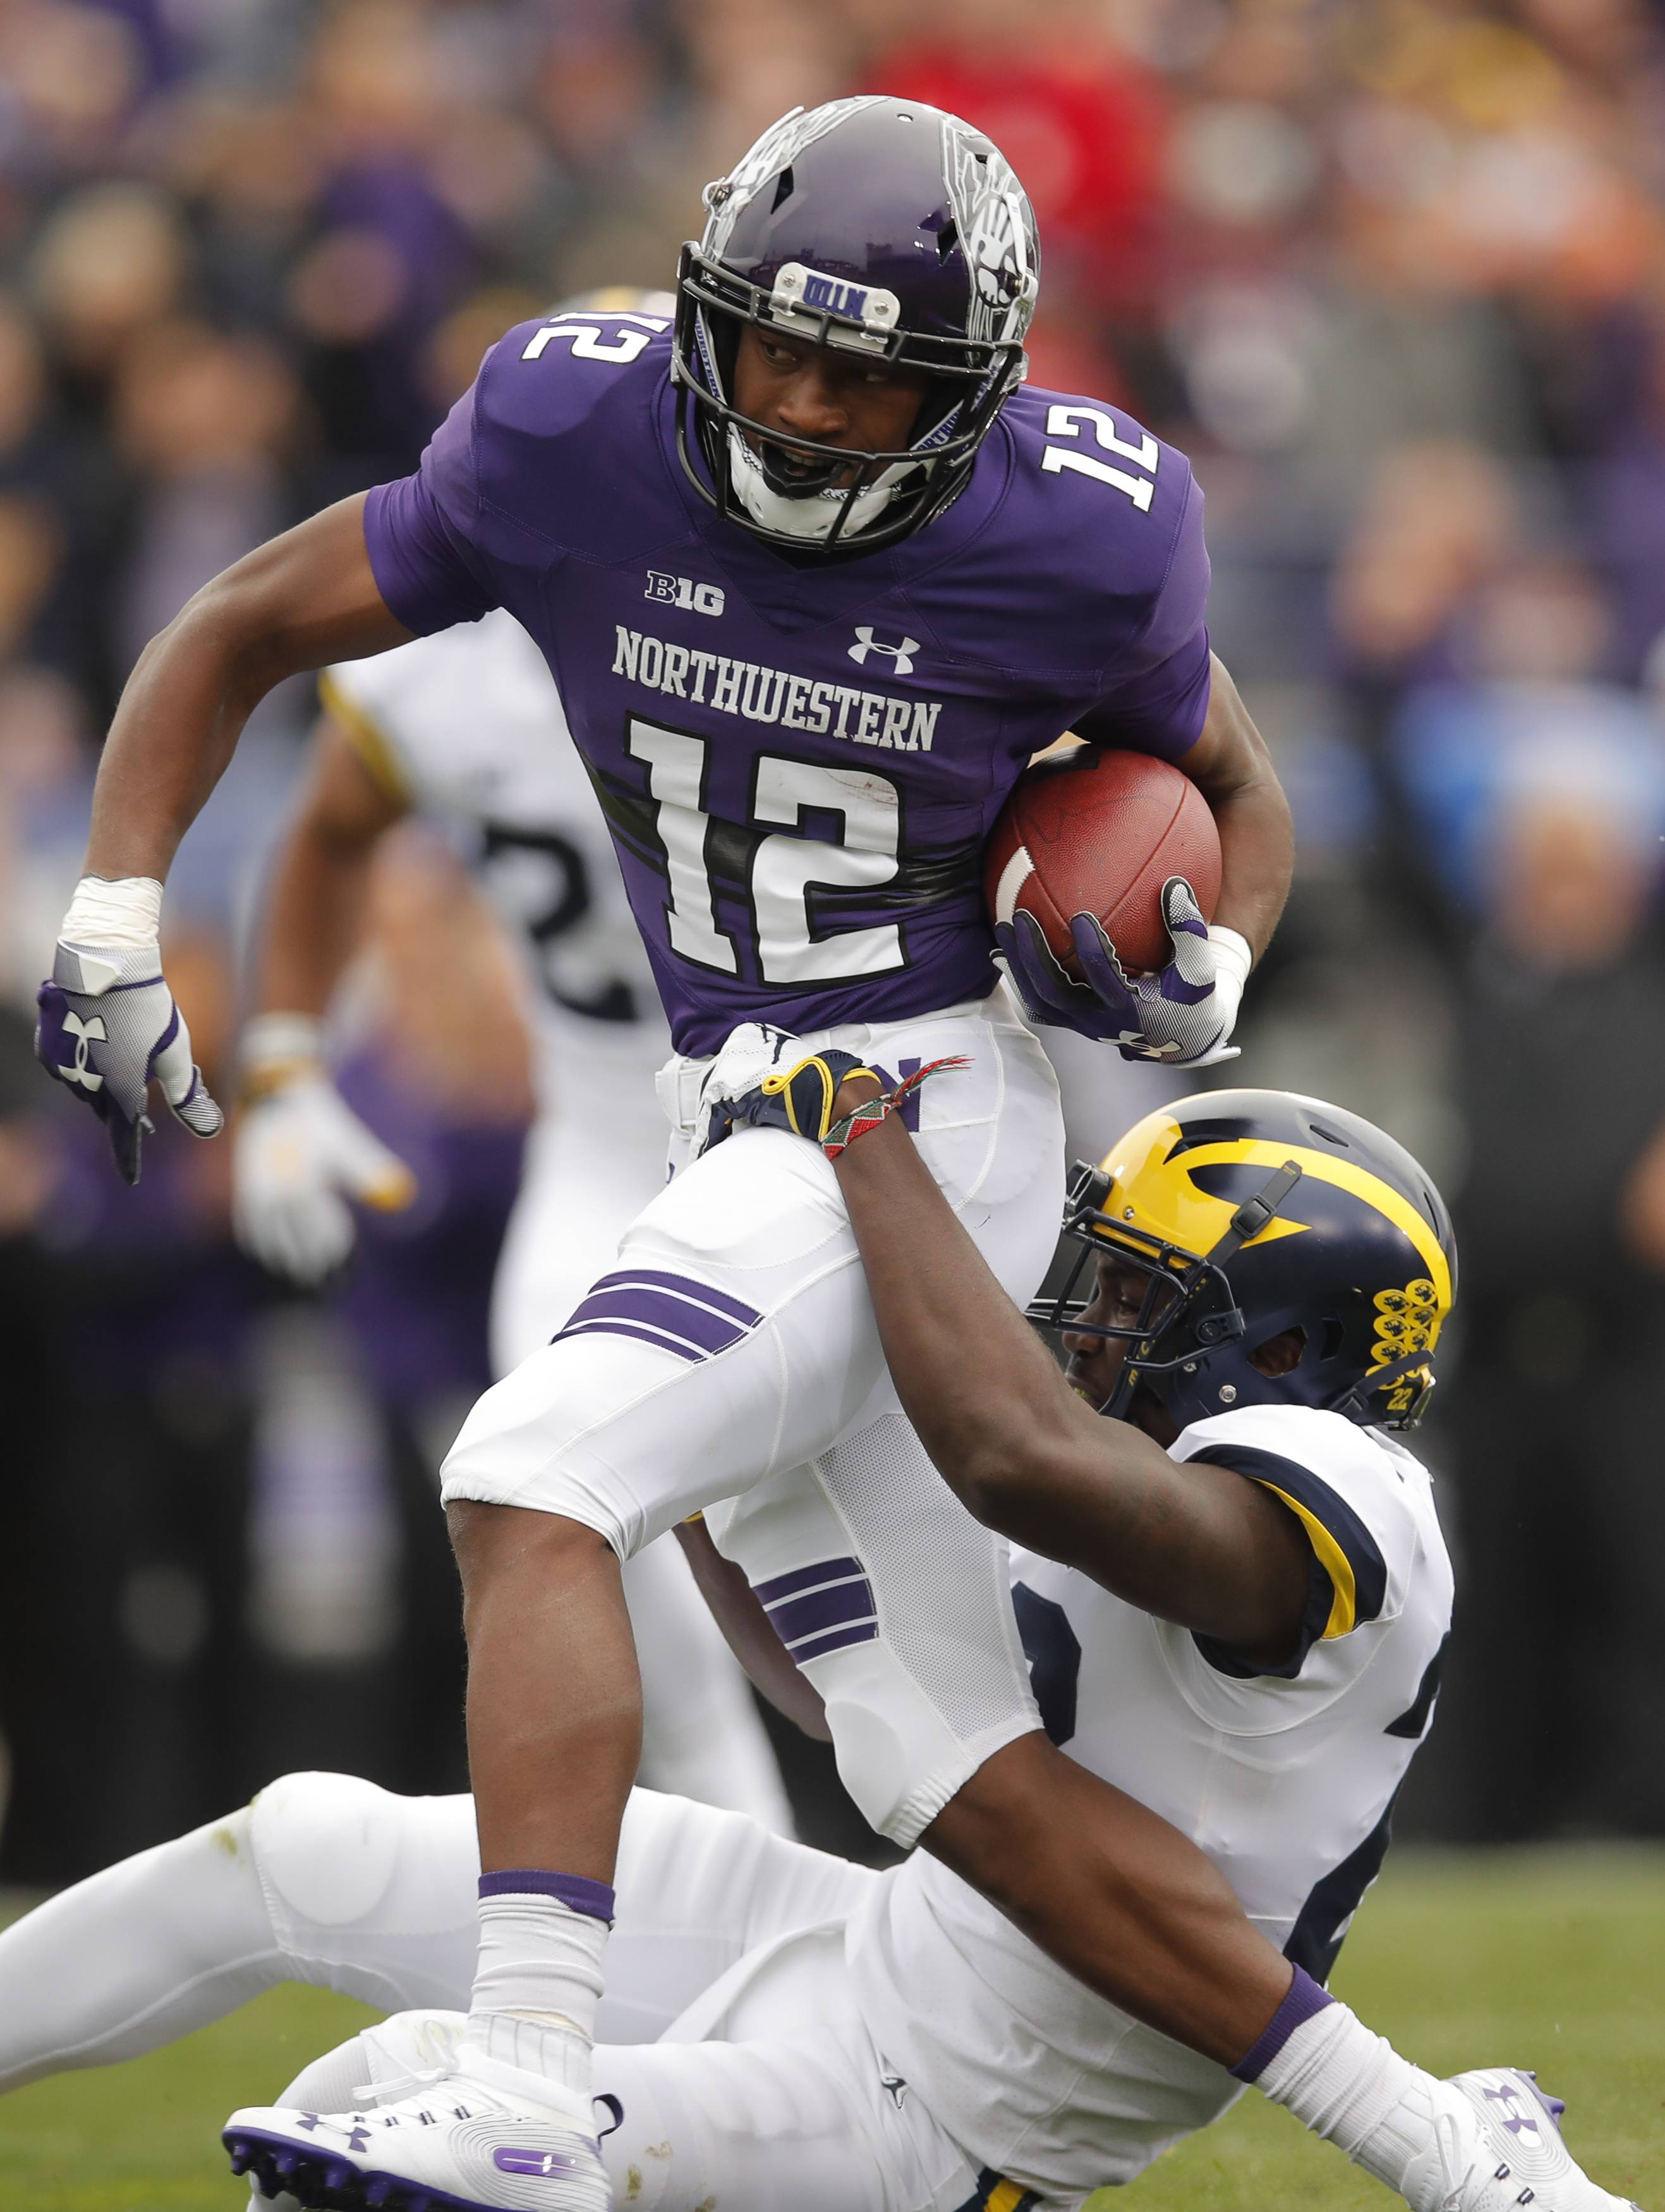 Once again, fast start doesn't result in a win for Northwestern